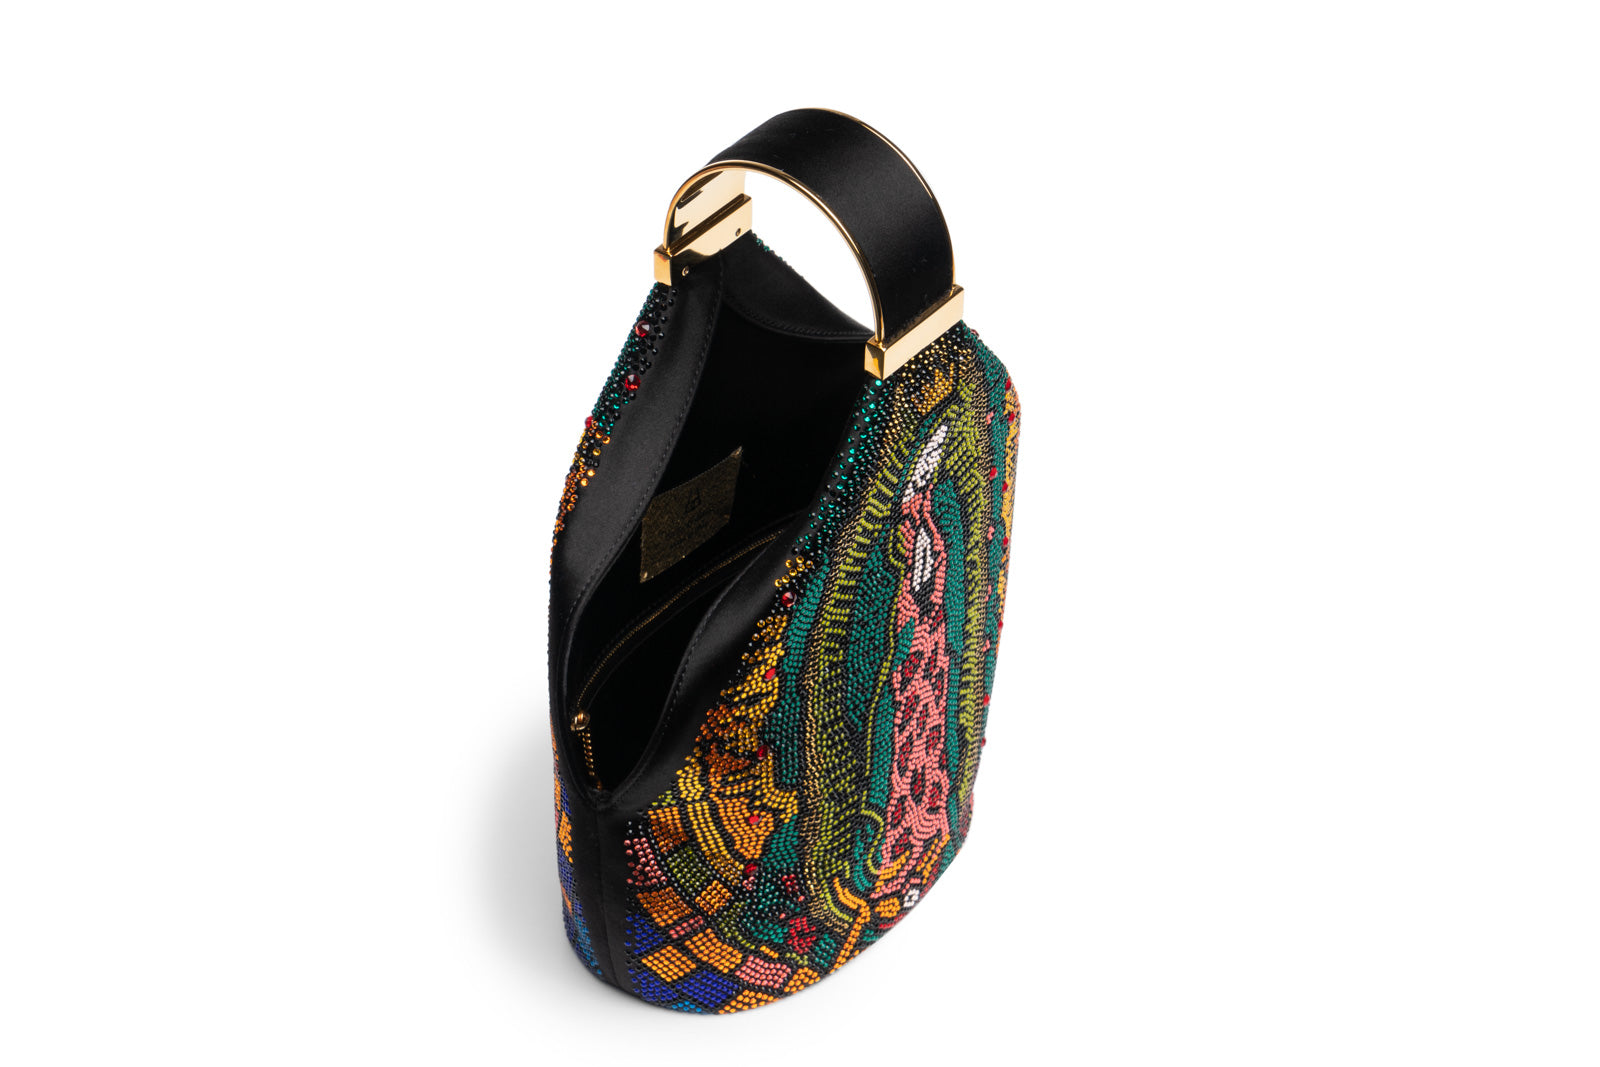 Kit Bracelet Bag in Multicolored Lady of Guadalupe Swarovski Crystals with 24K Gold Dipped Hardware